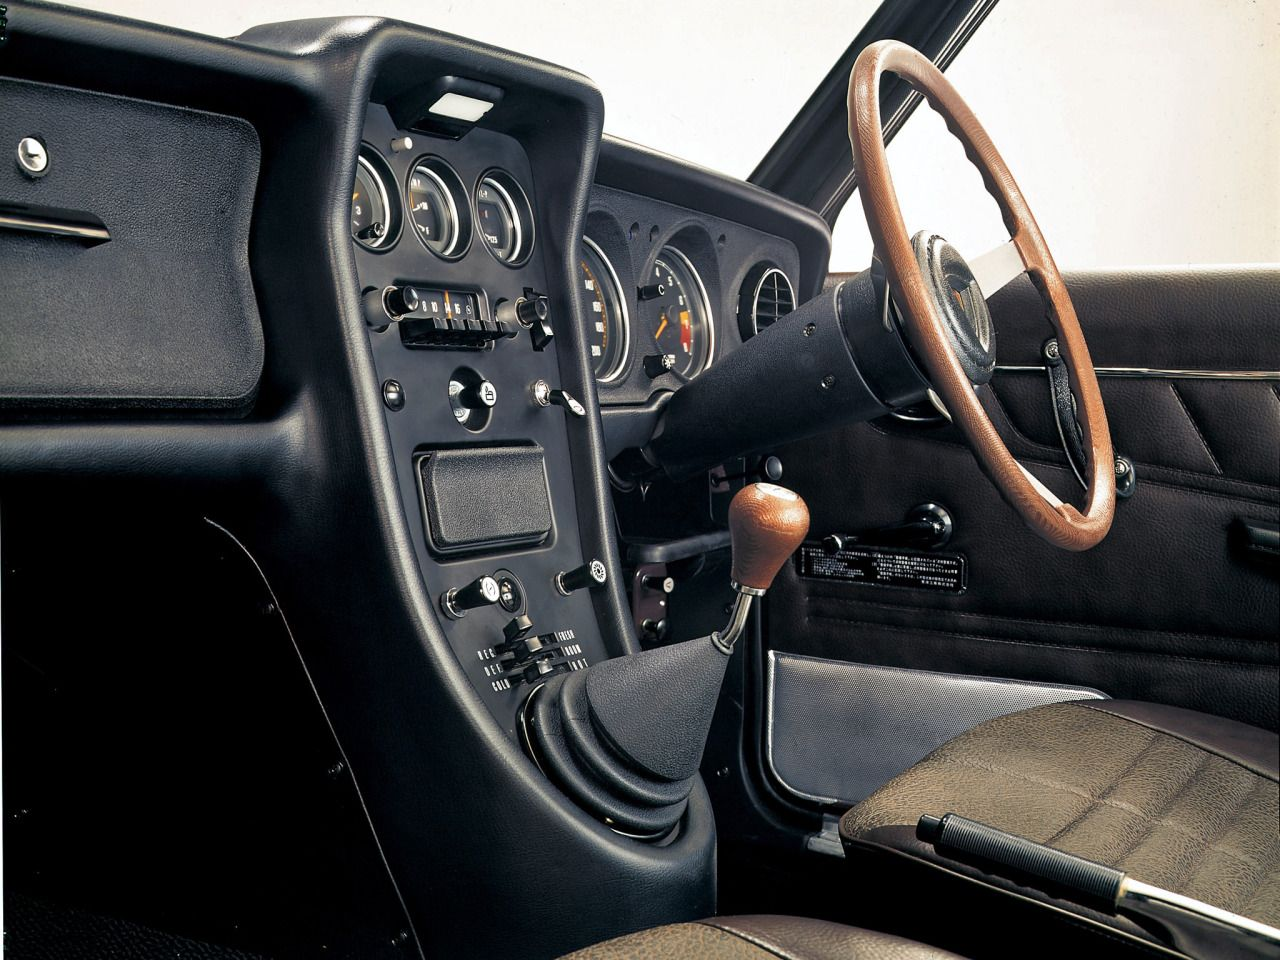 Car interior material - 1968 Mazda Familia Maintenance Restoration Of Old Vintage Vehicles The Material For New